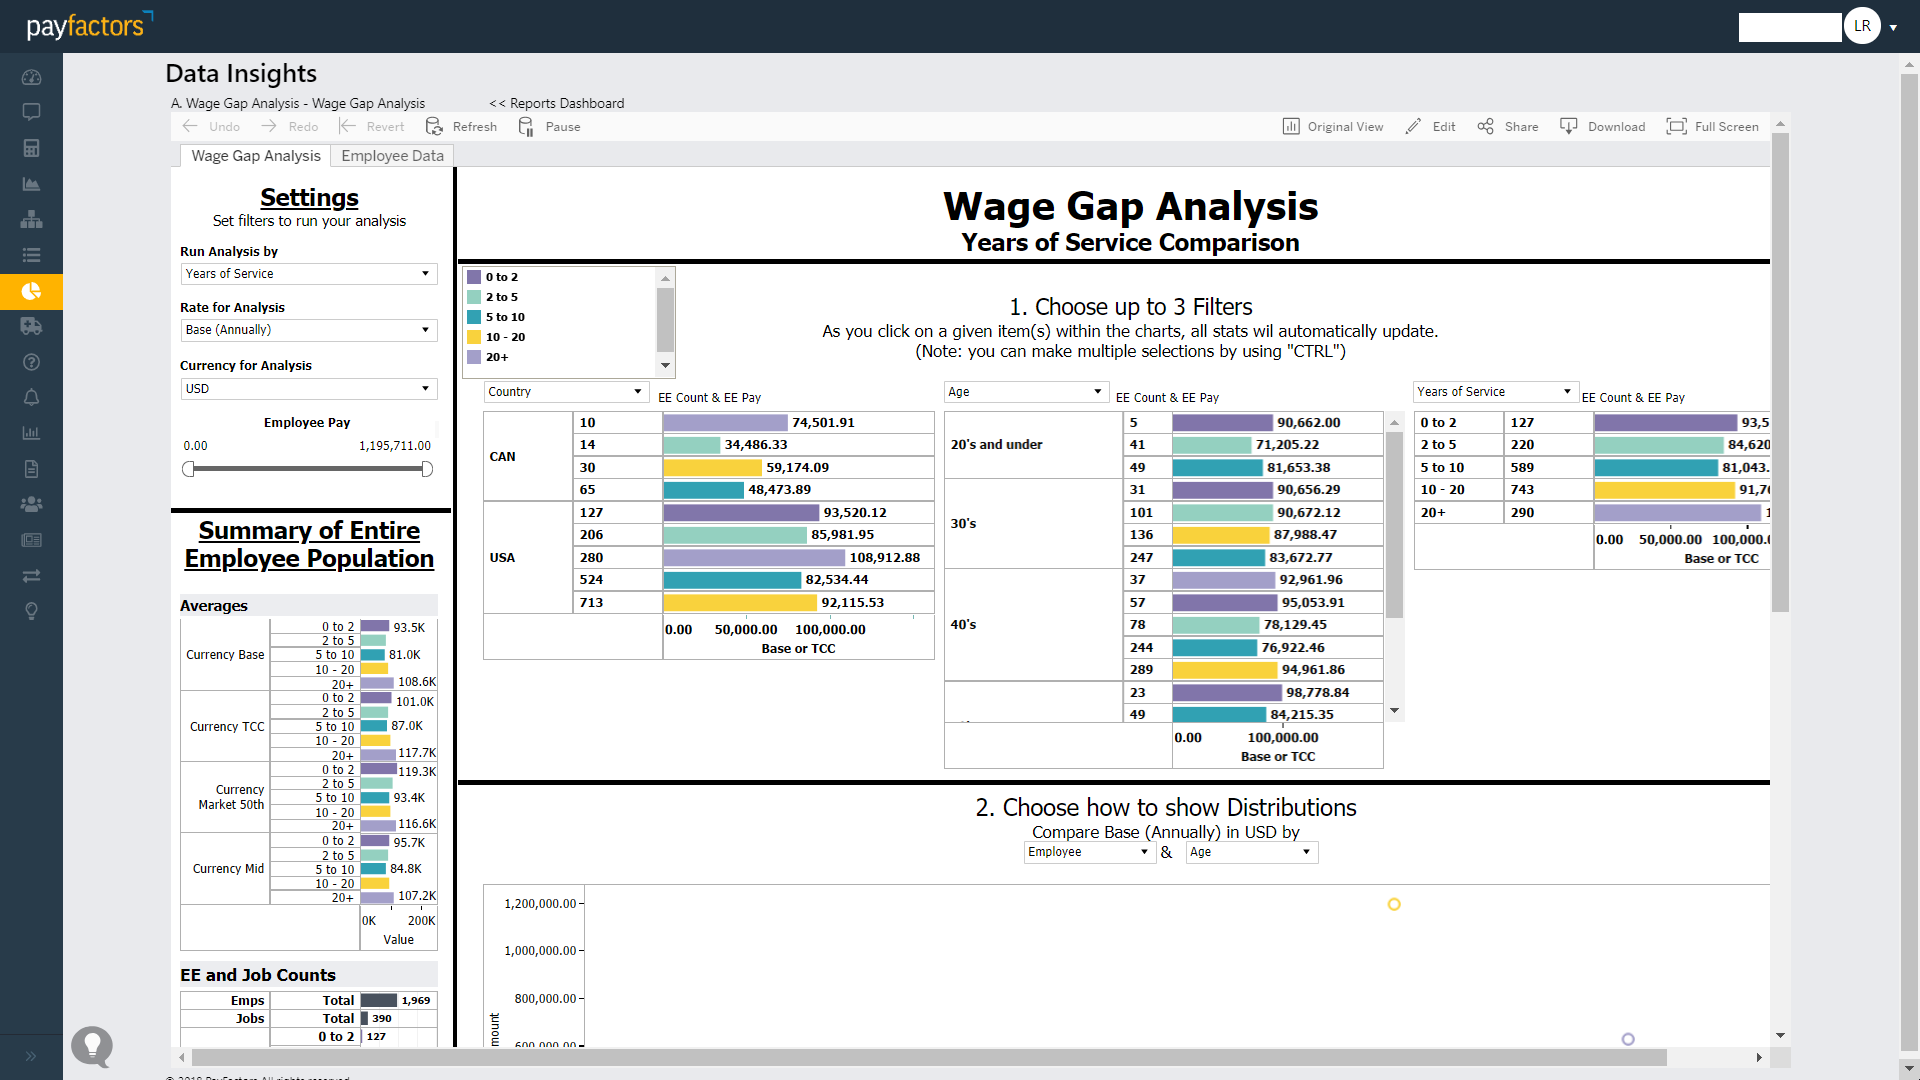 Payfactors Demo - Wage Gap Analysis - Data Insights